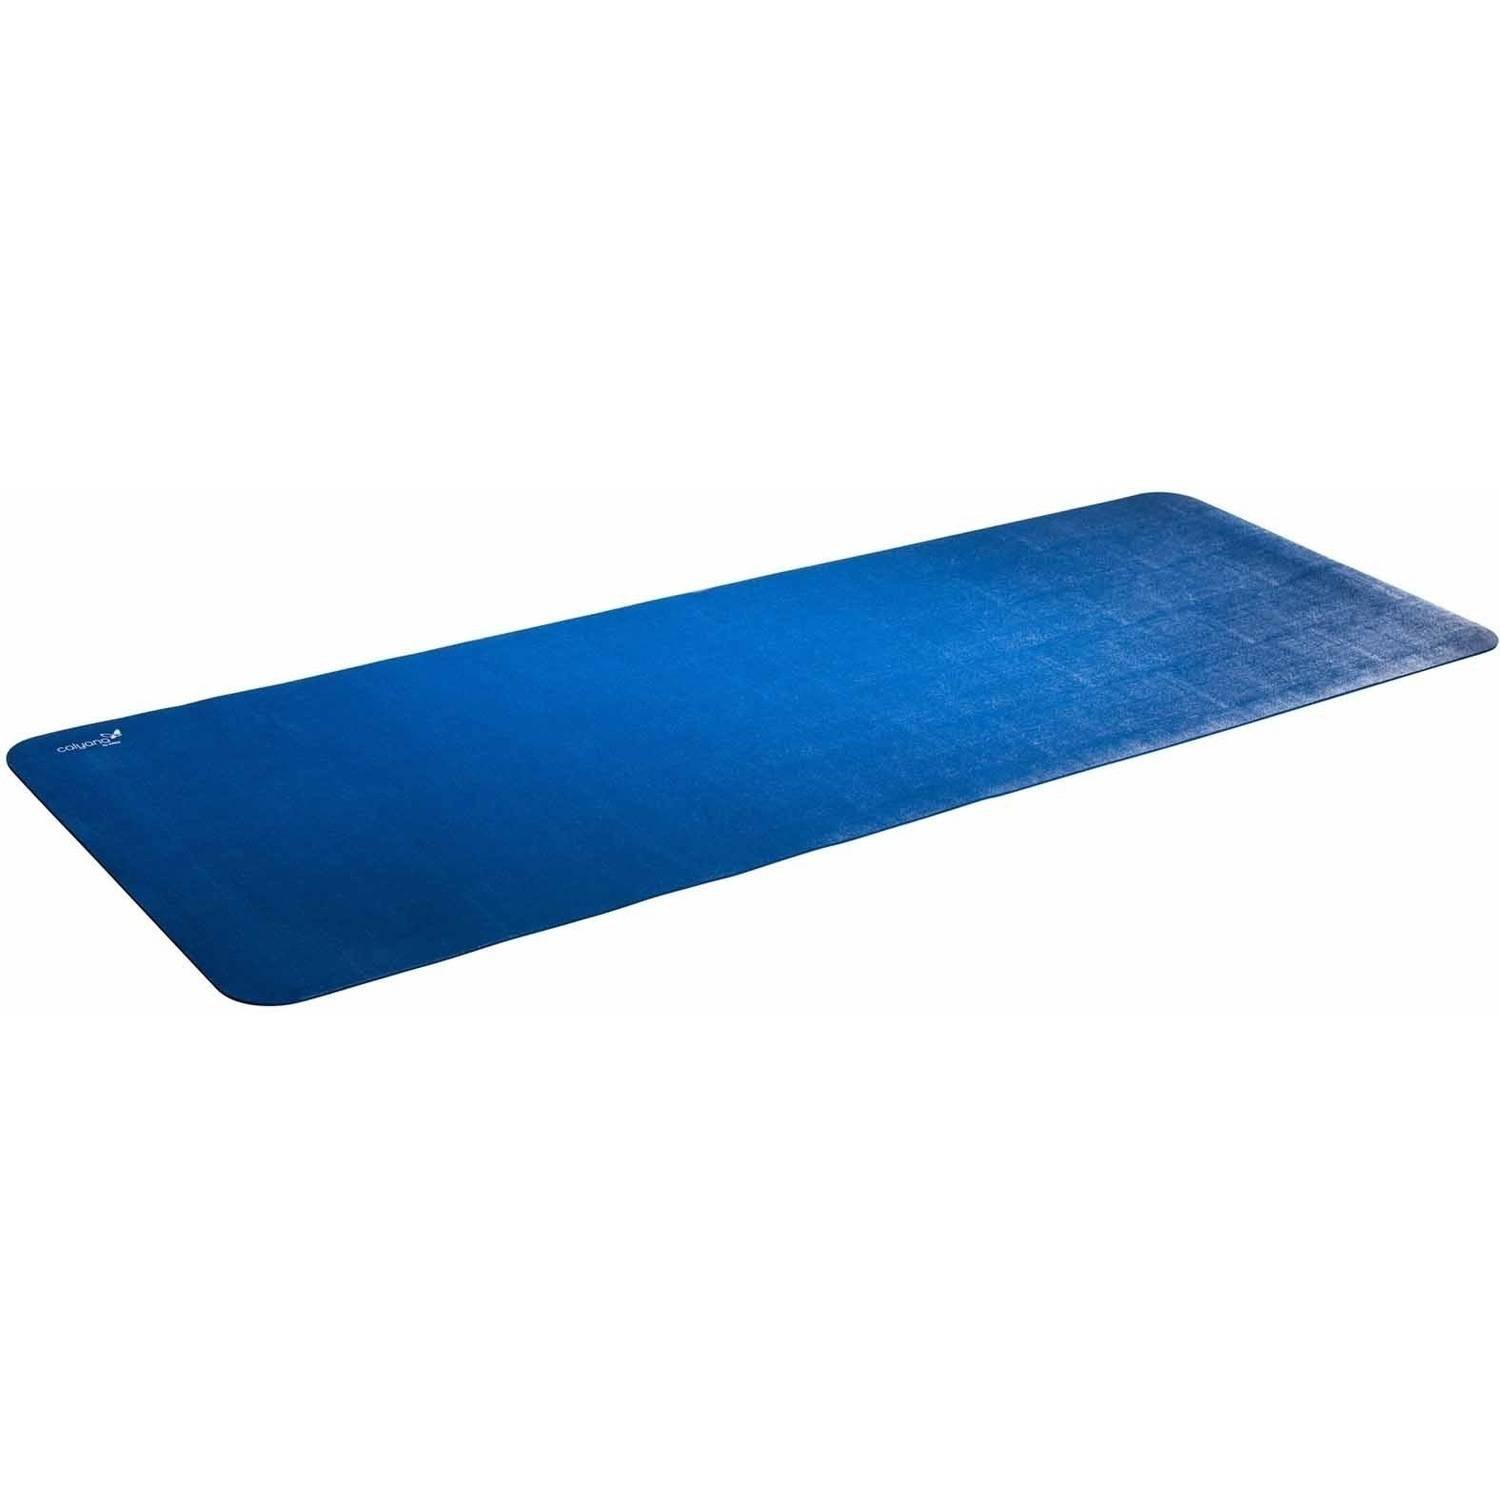 Amazon.com: Airex Exercise Mat - Calyana Single Sided Prime ...